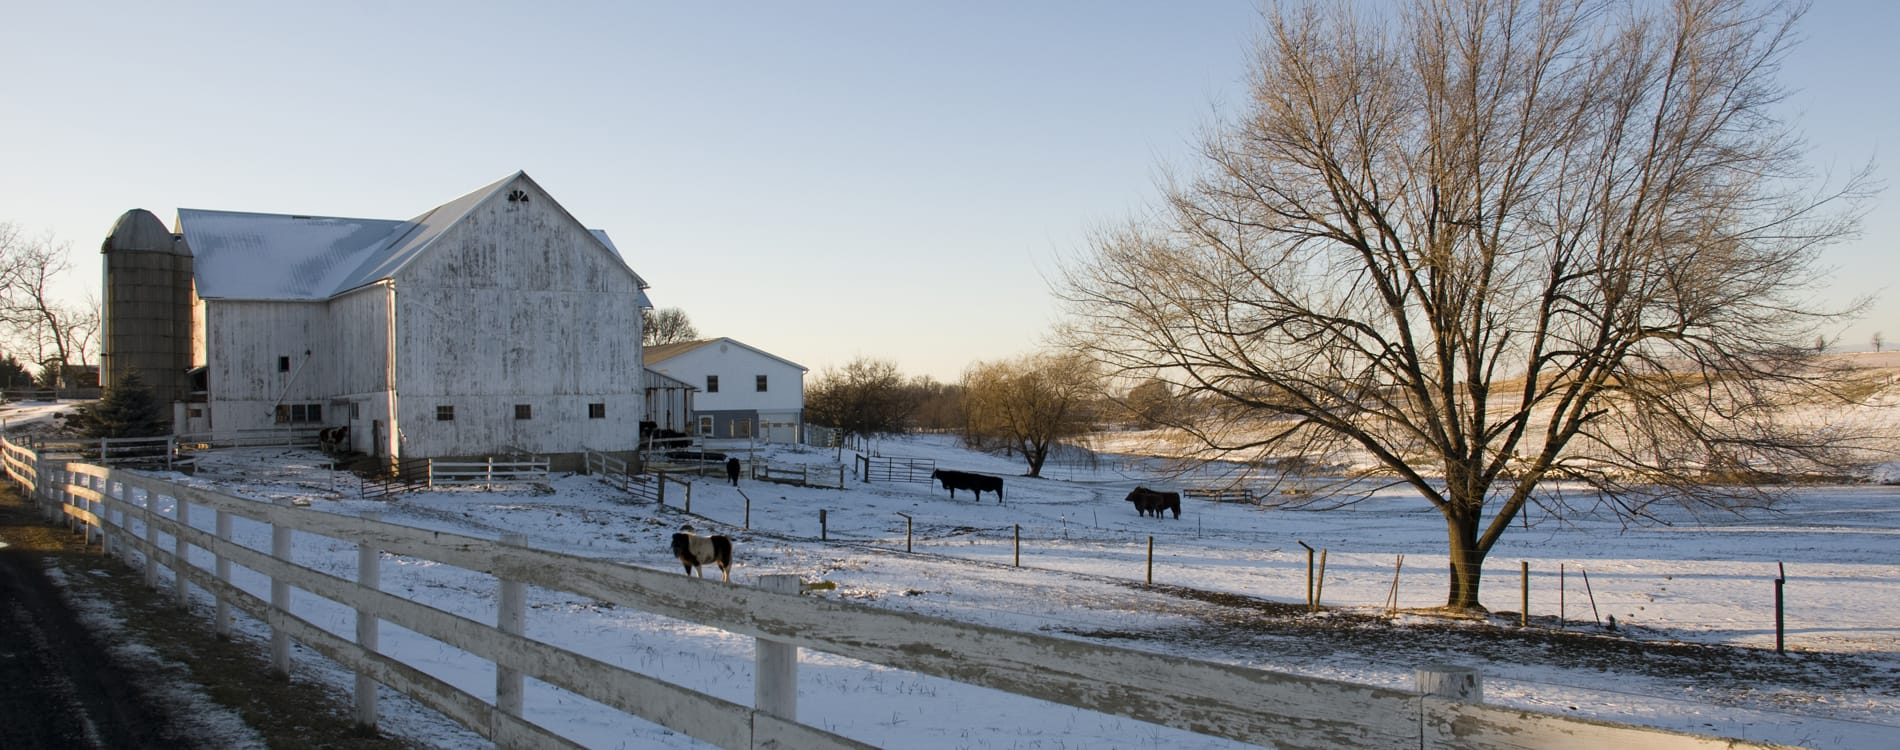 Amish Country, OH - Winter on an Amish Farm